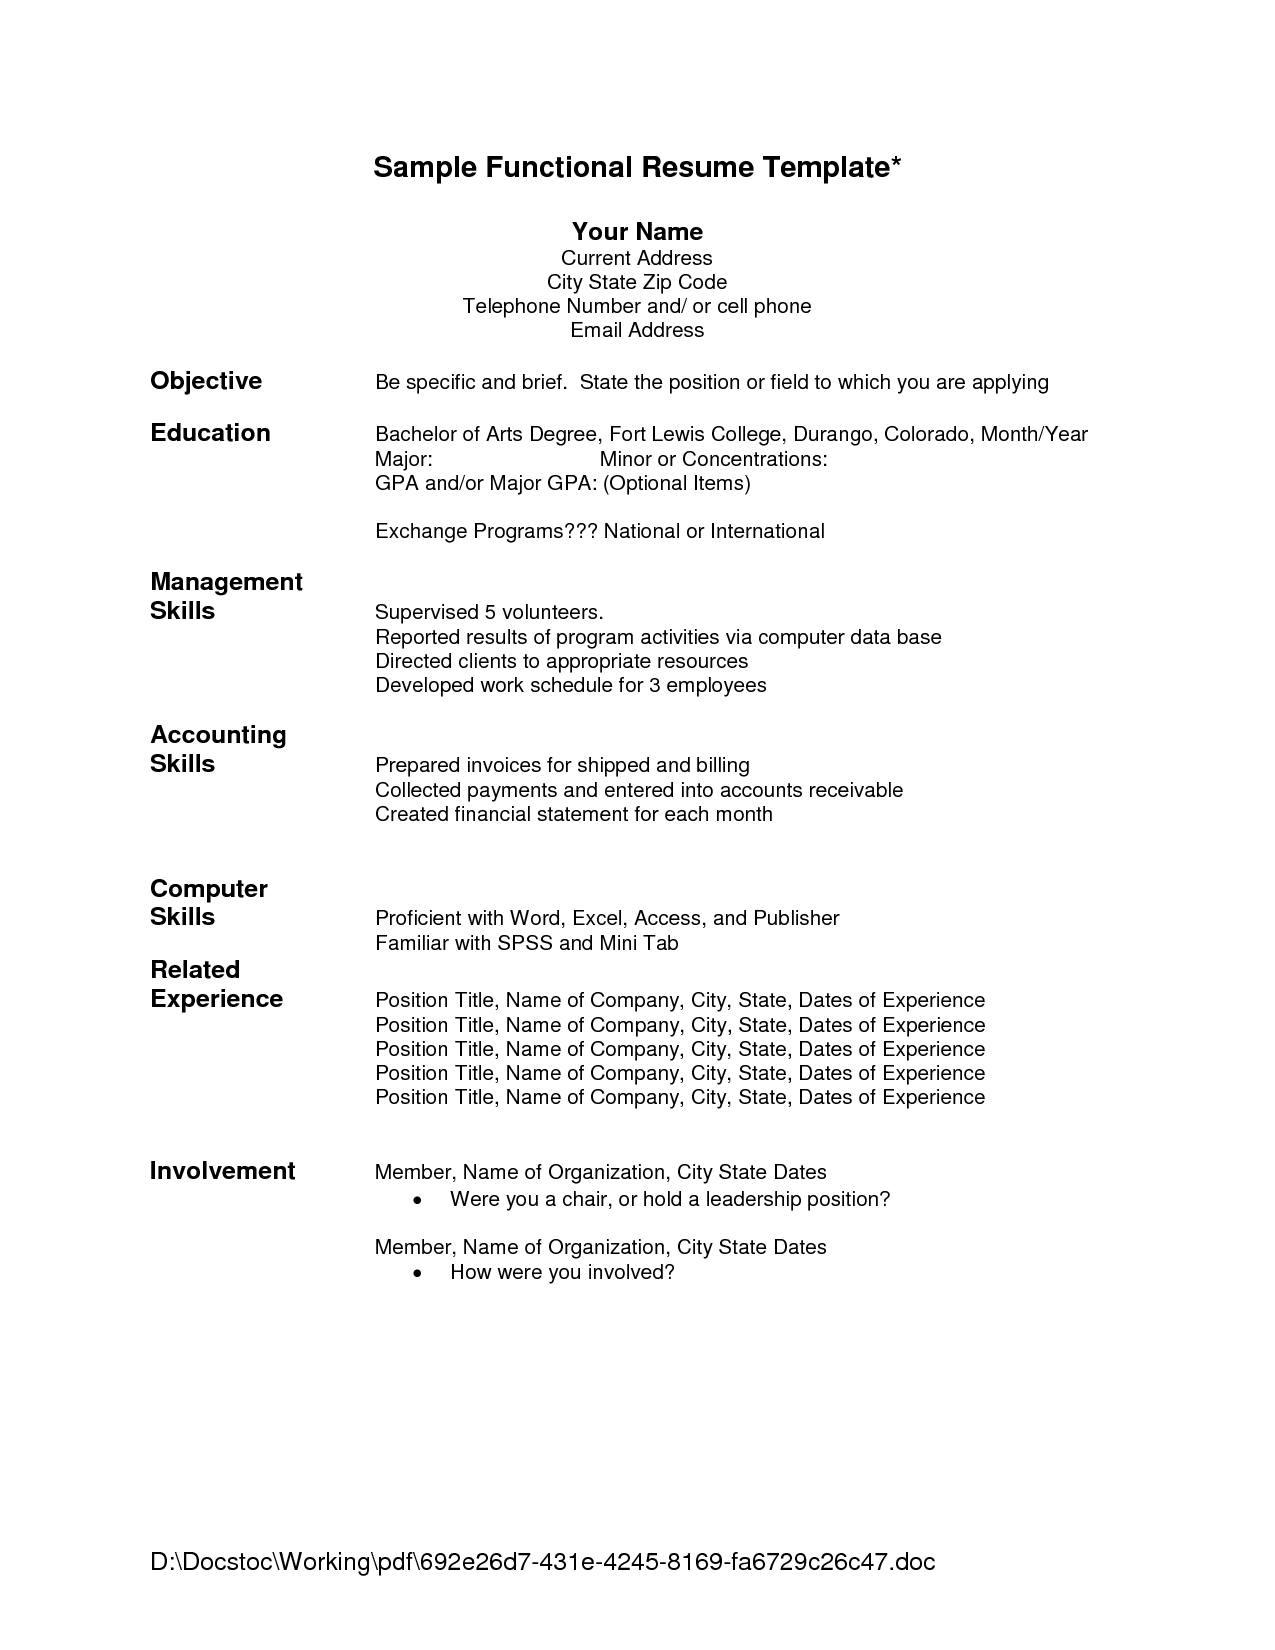 current resume templates - Roberto.mattni.co